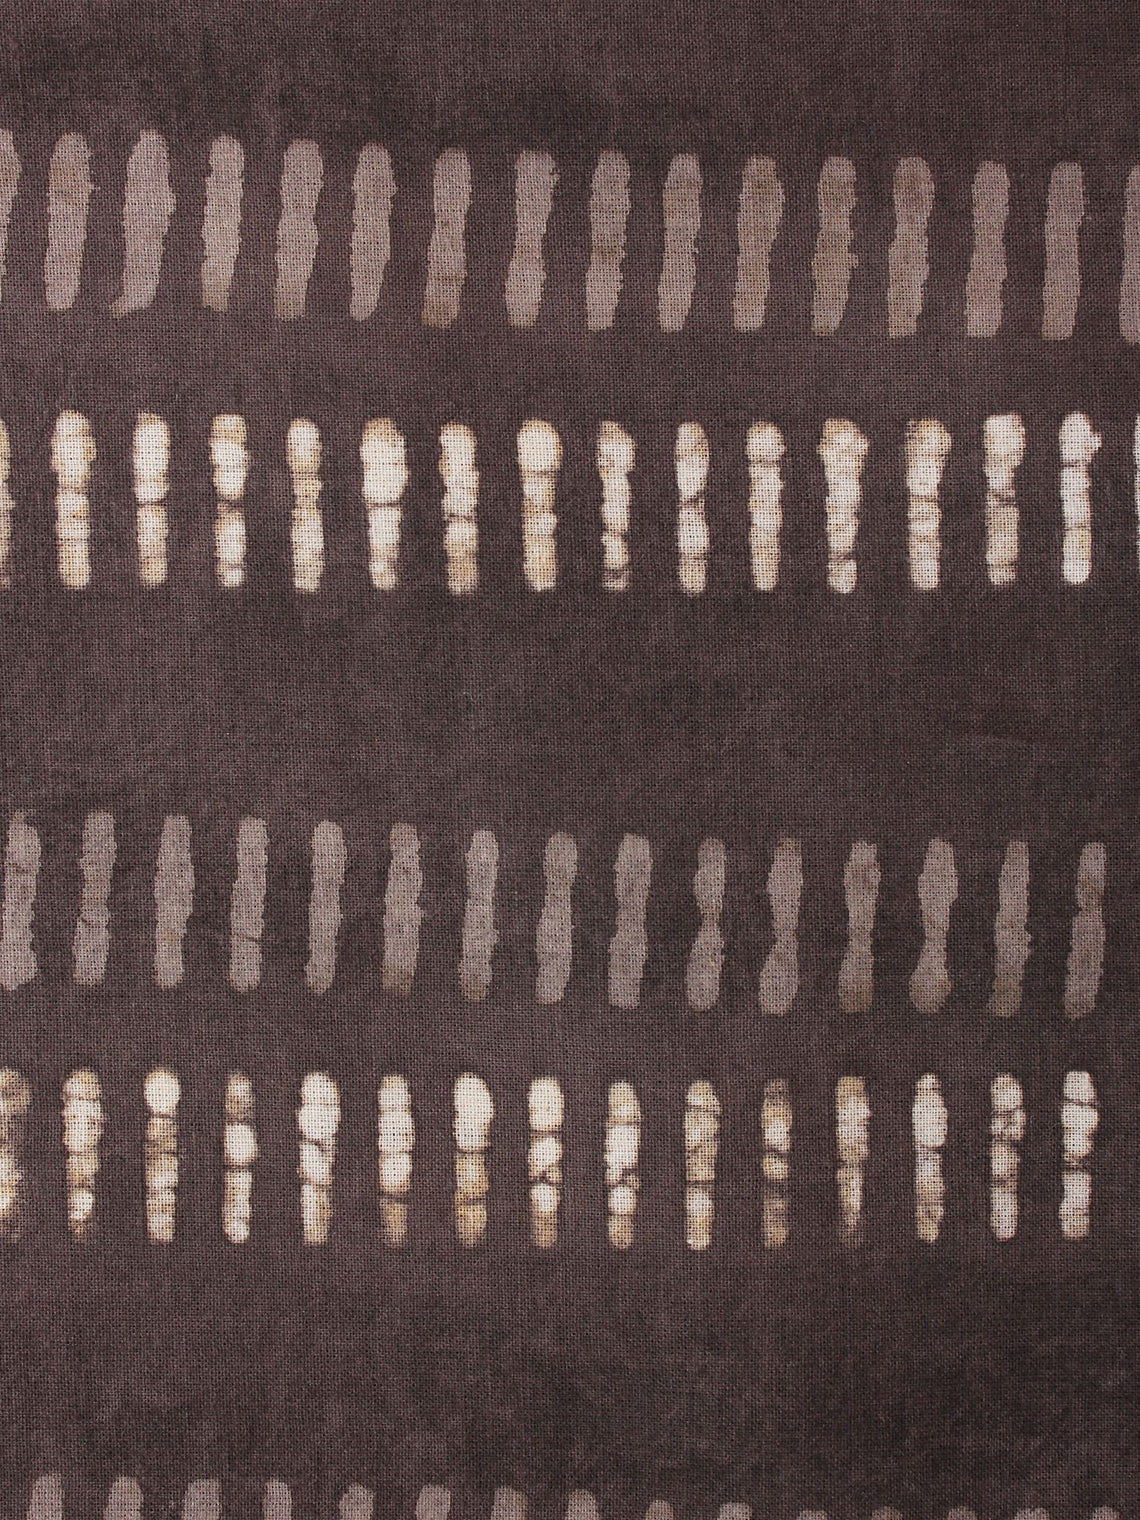 Brown Off White Hand Block Printed Cotton Cambric Fabric Per Meter - F0916446